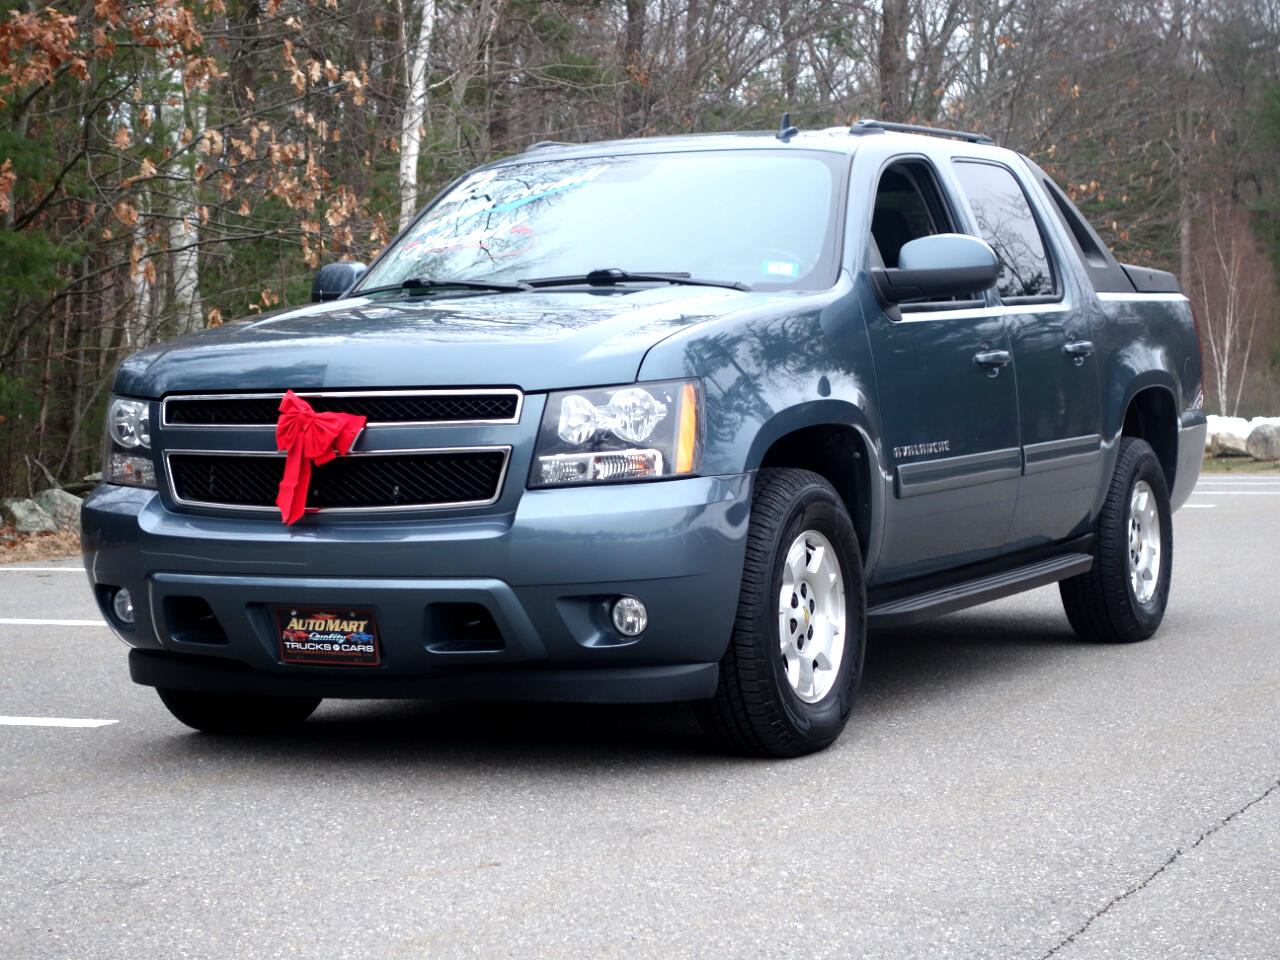 Chevrolet Avalanche 4WD Crew Cab LS 2012